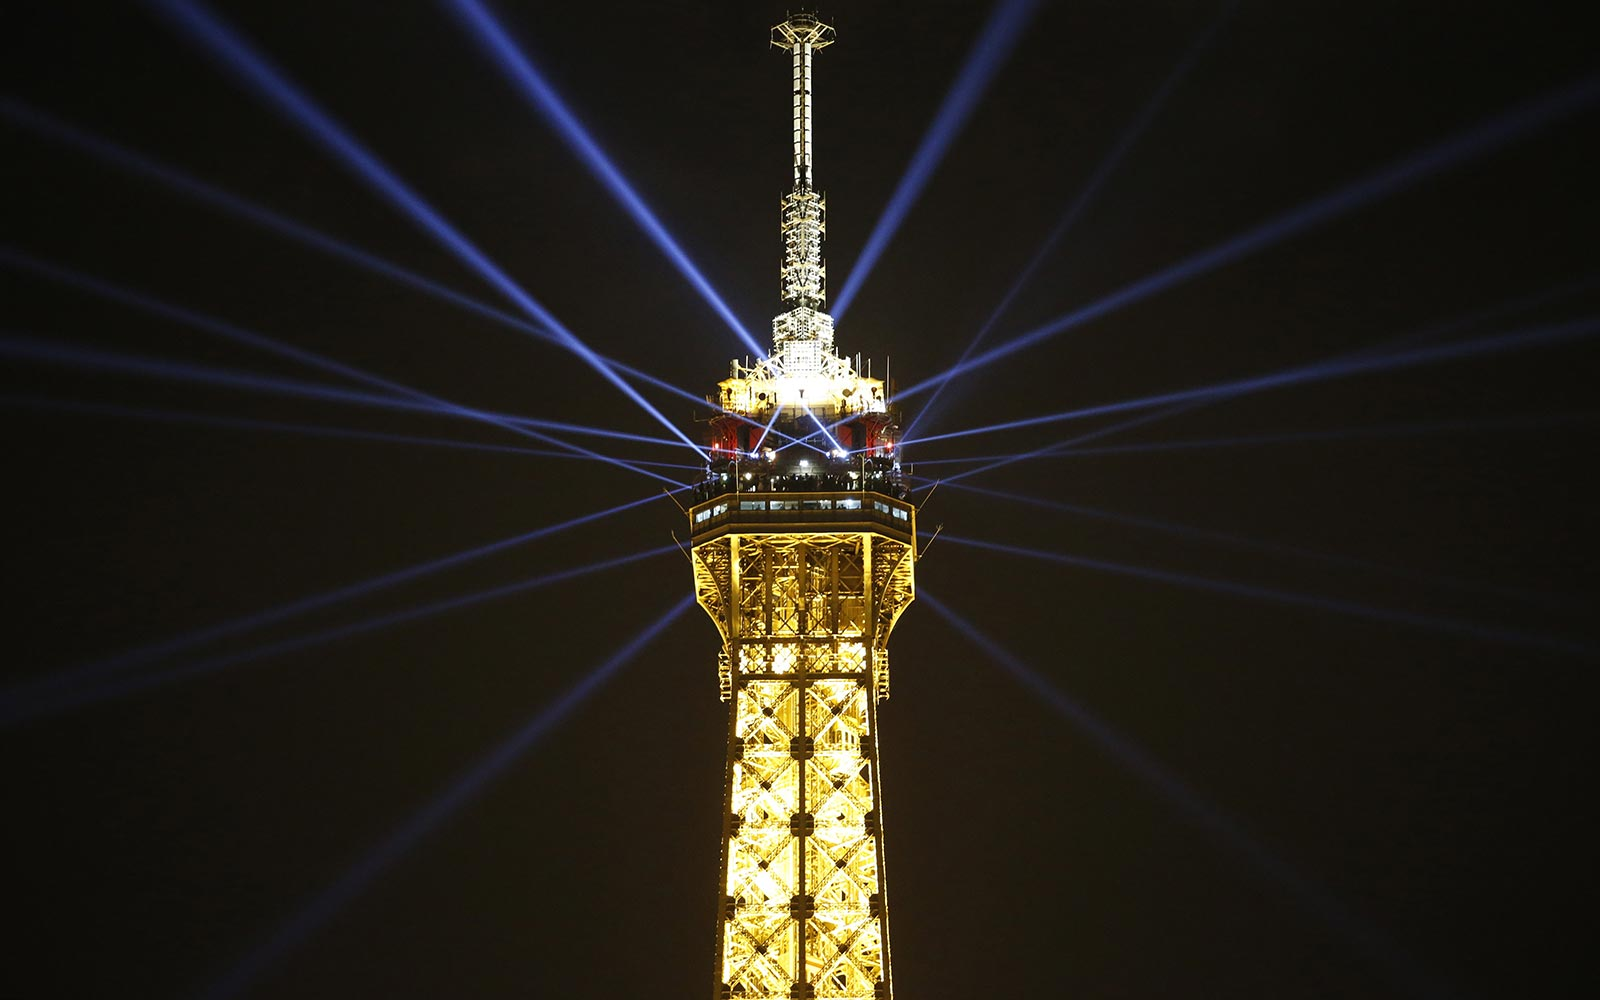 Eiffel Tower Landmark Paris France Light Show